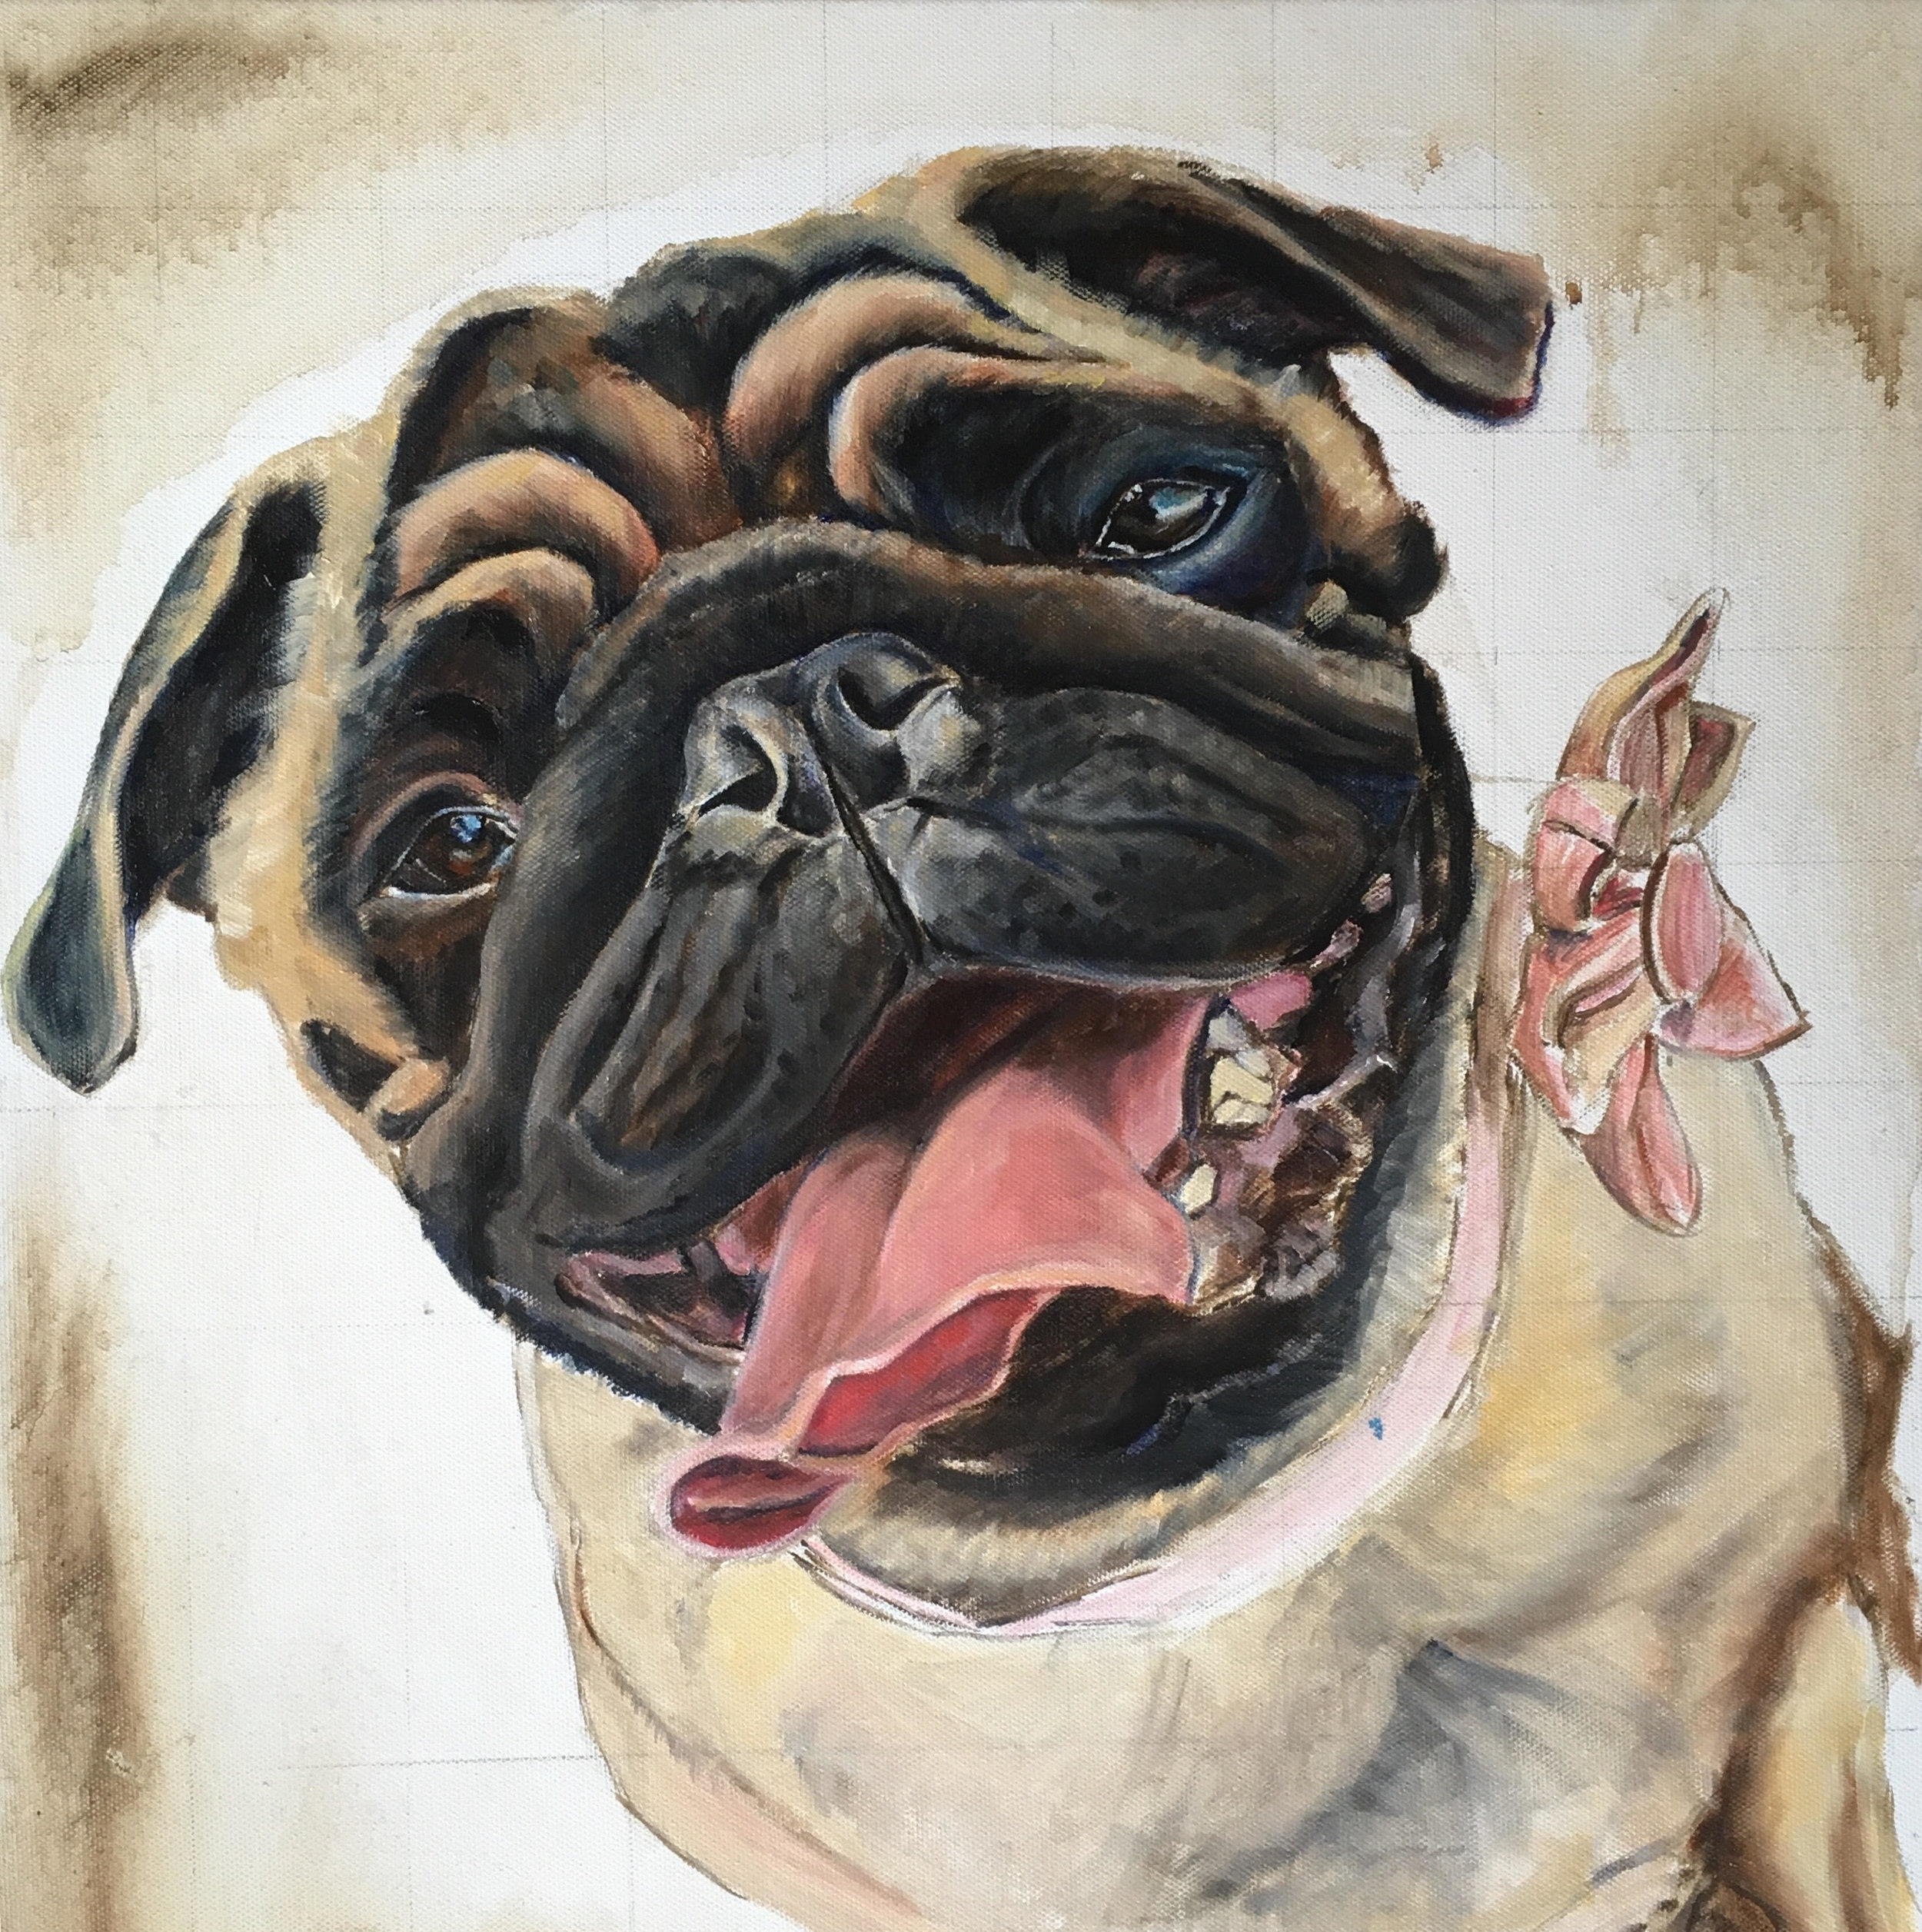 DOG UNDER PAINTING 3. CUSTOM PORTRAIT BY OPAL PASTRO ART